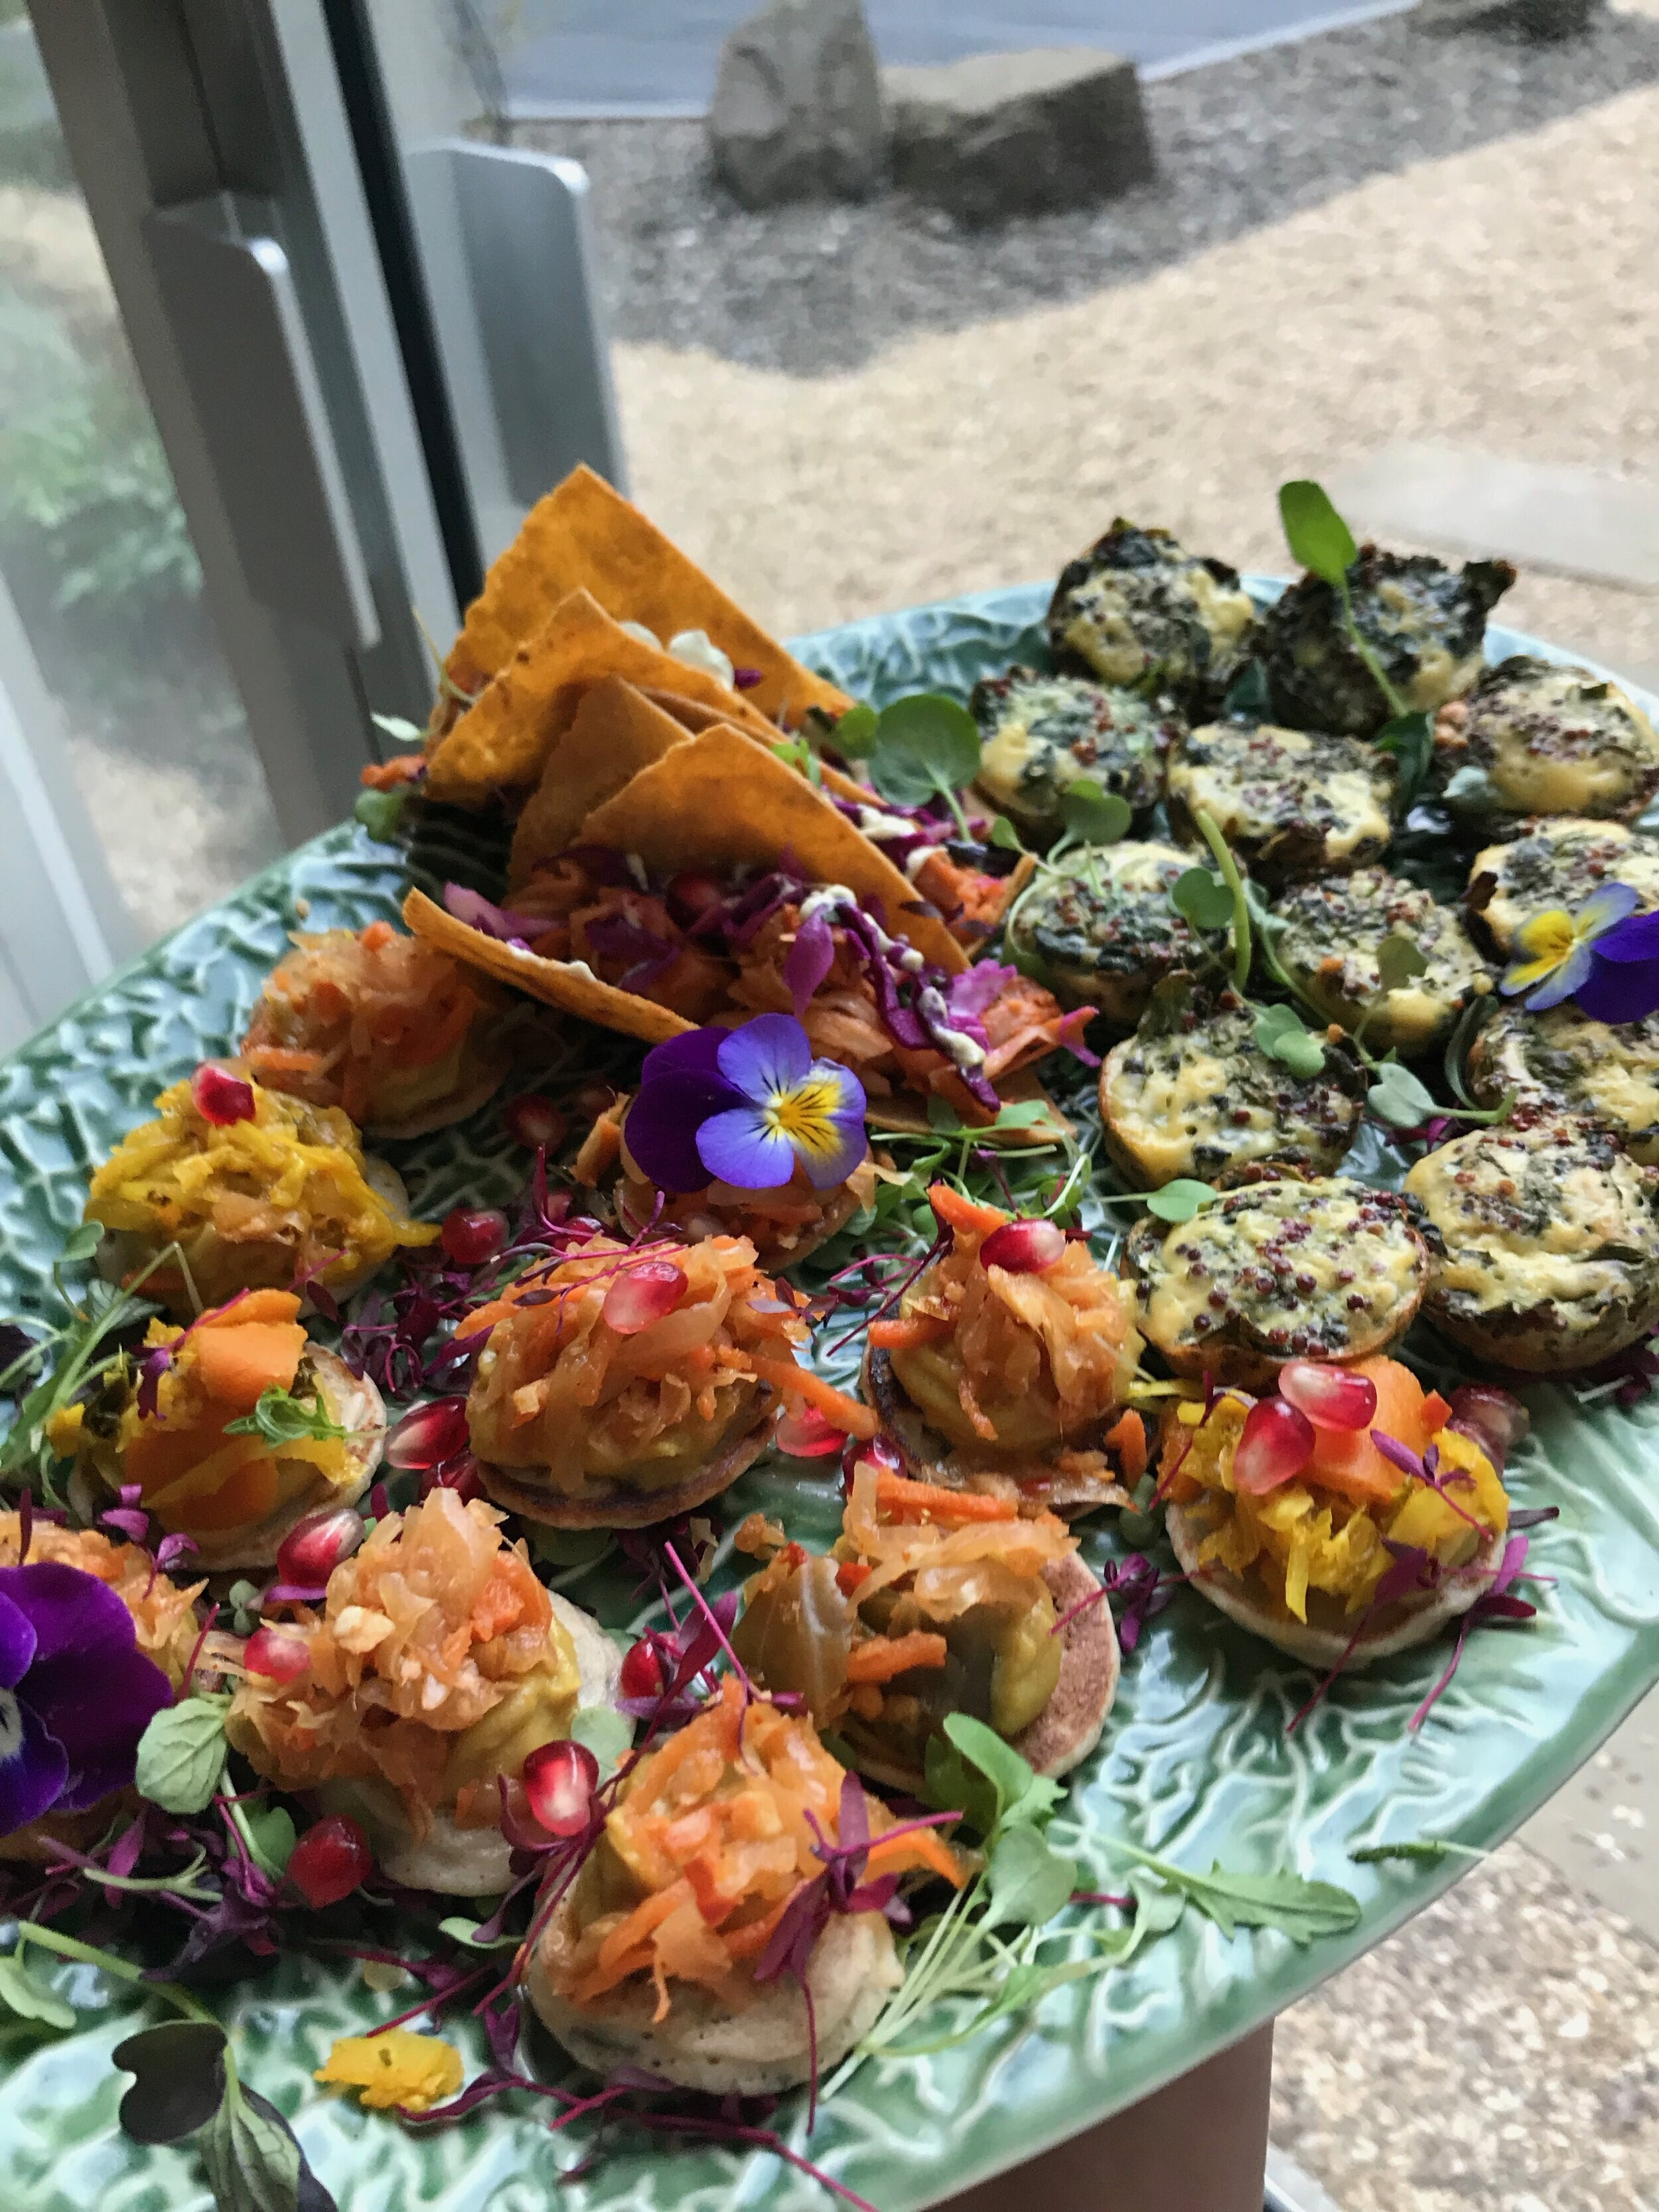 Fodmap canapé event - The Gut Stuff - Fodmap friendly canapés created for a Gut friendly event in Manchester for 100 people